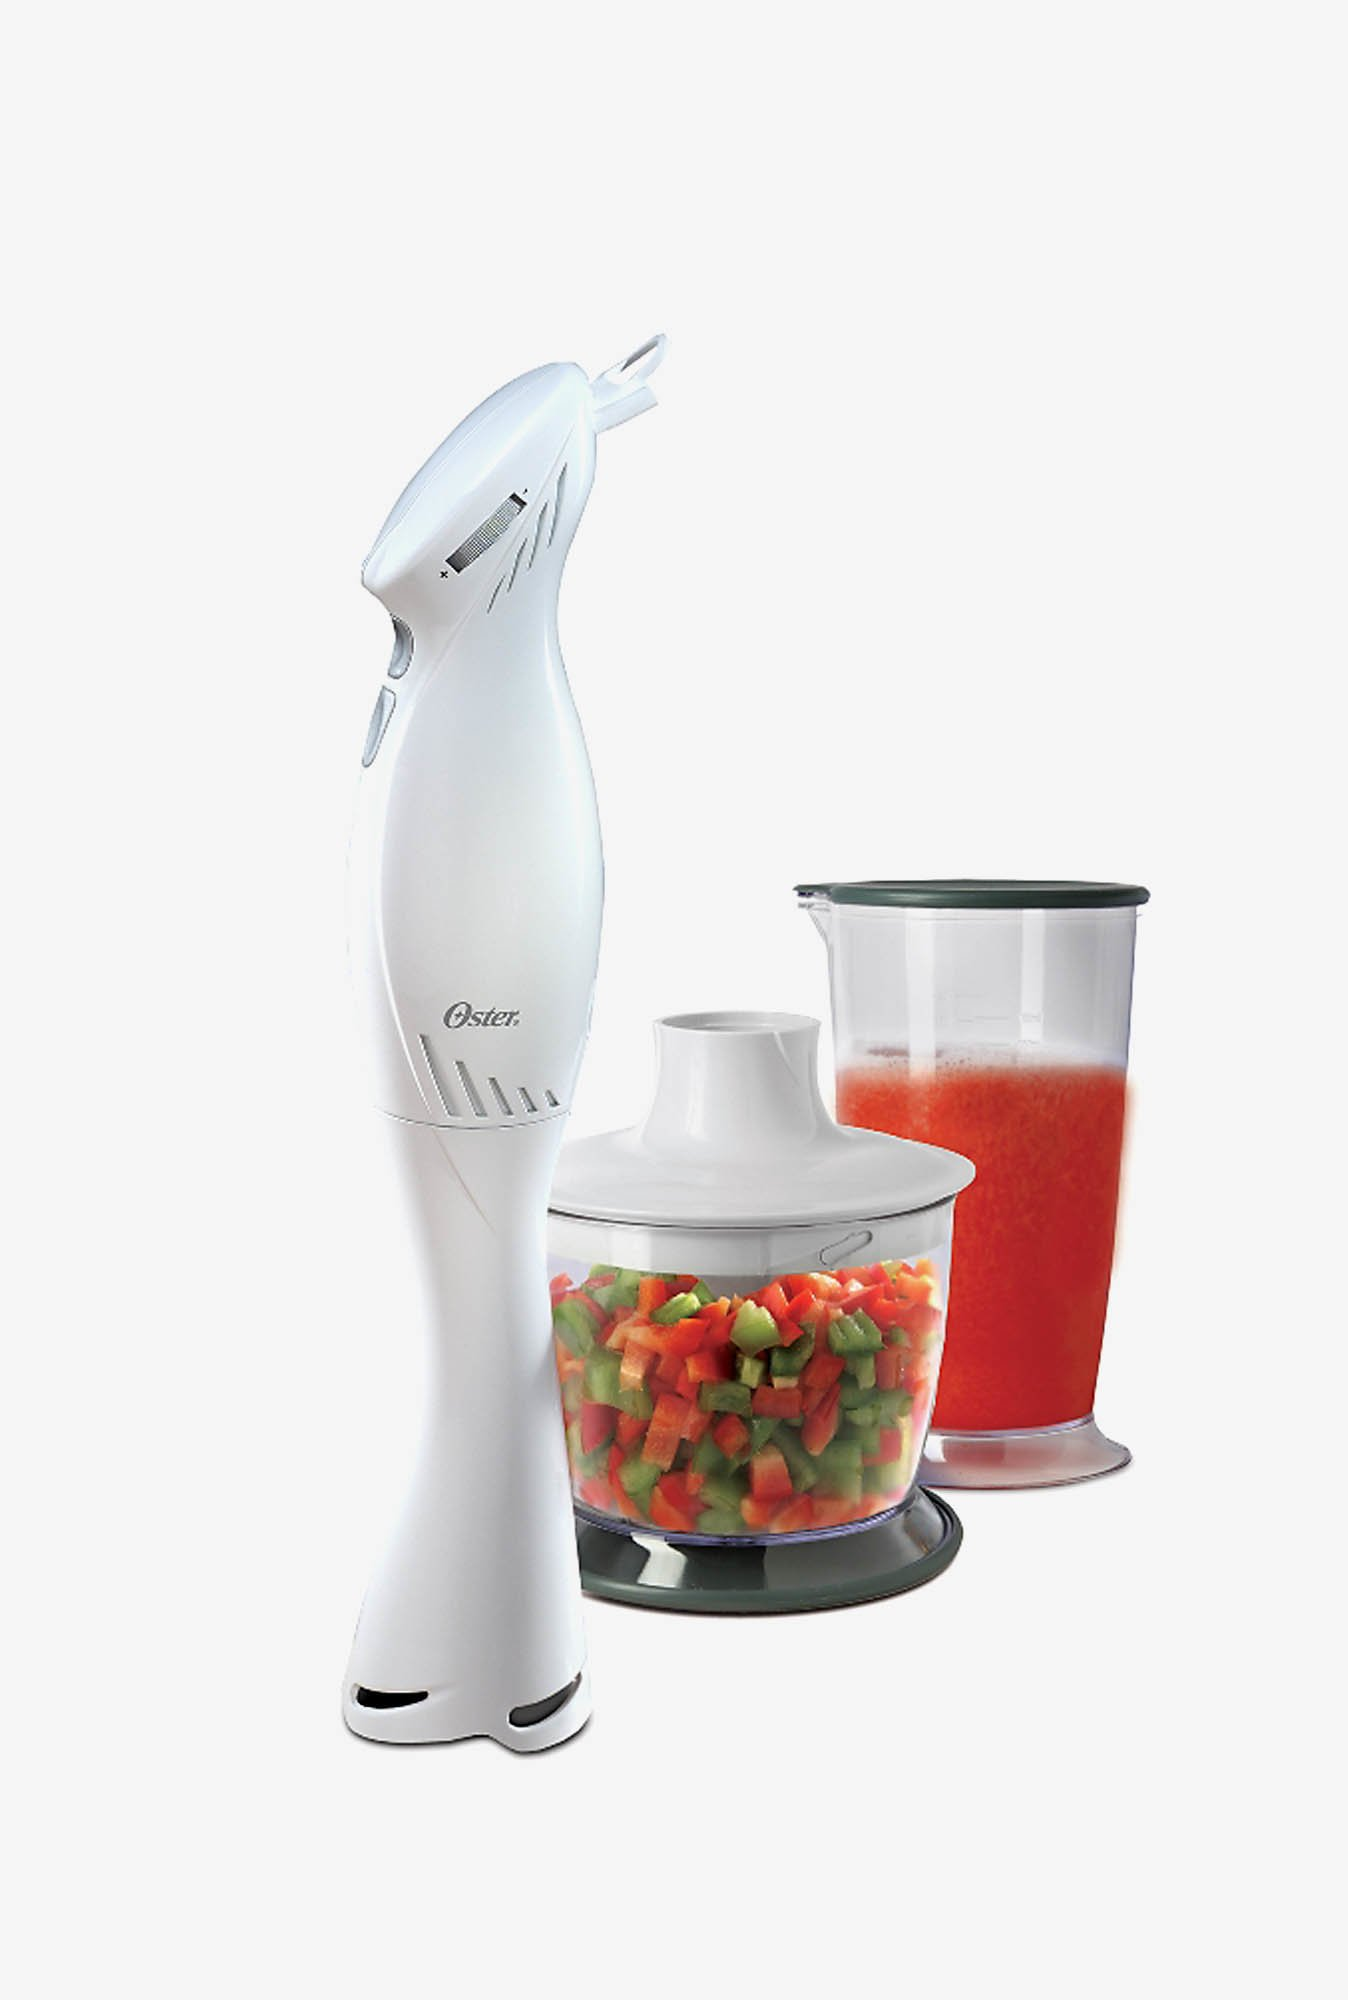 Oster 2612 Hand Blender with Chopping Attachment (White)